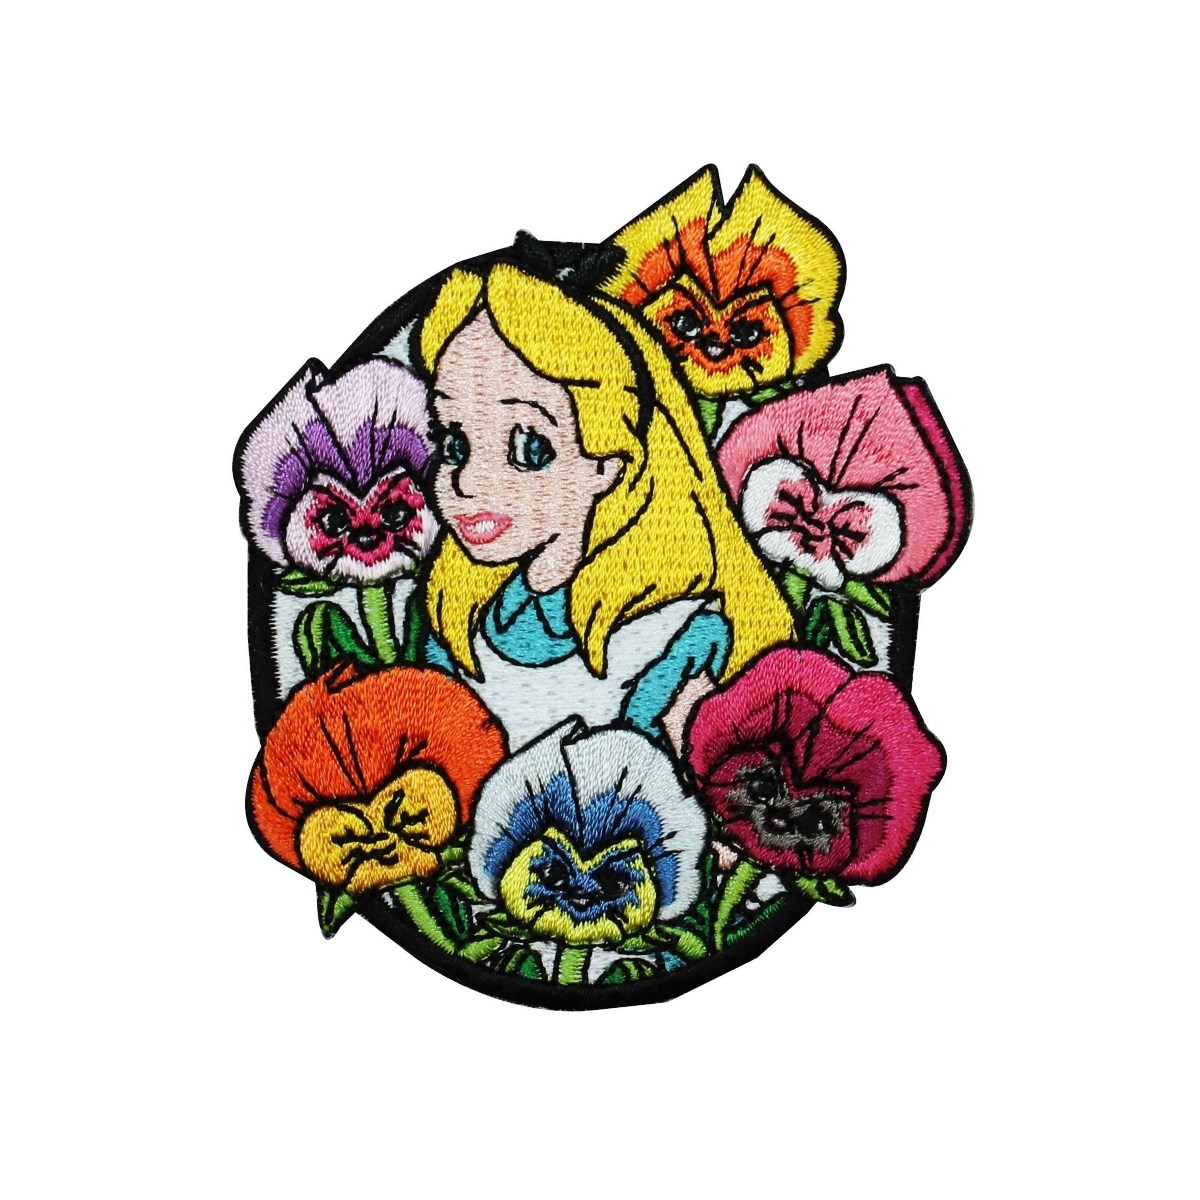 Alice in Wonderland Flowers Iron-On Patch Disney Cartoon Embroidered Applique